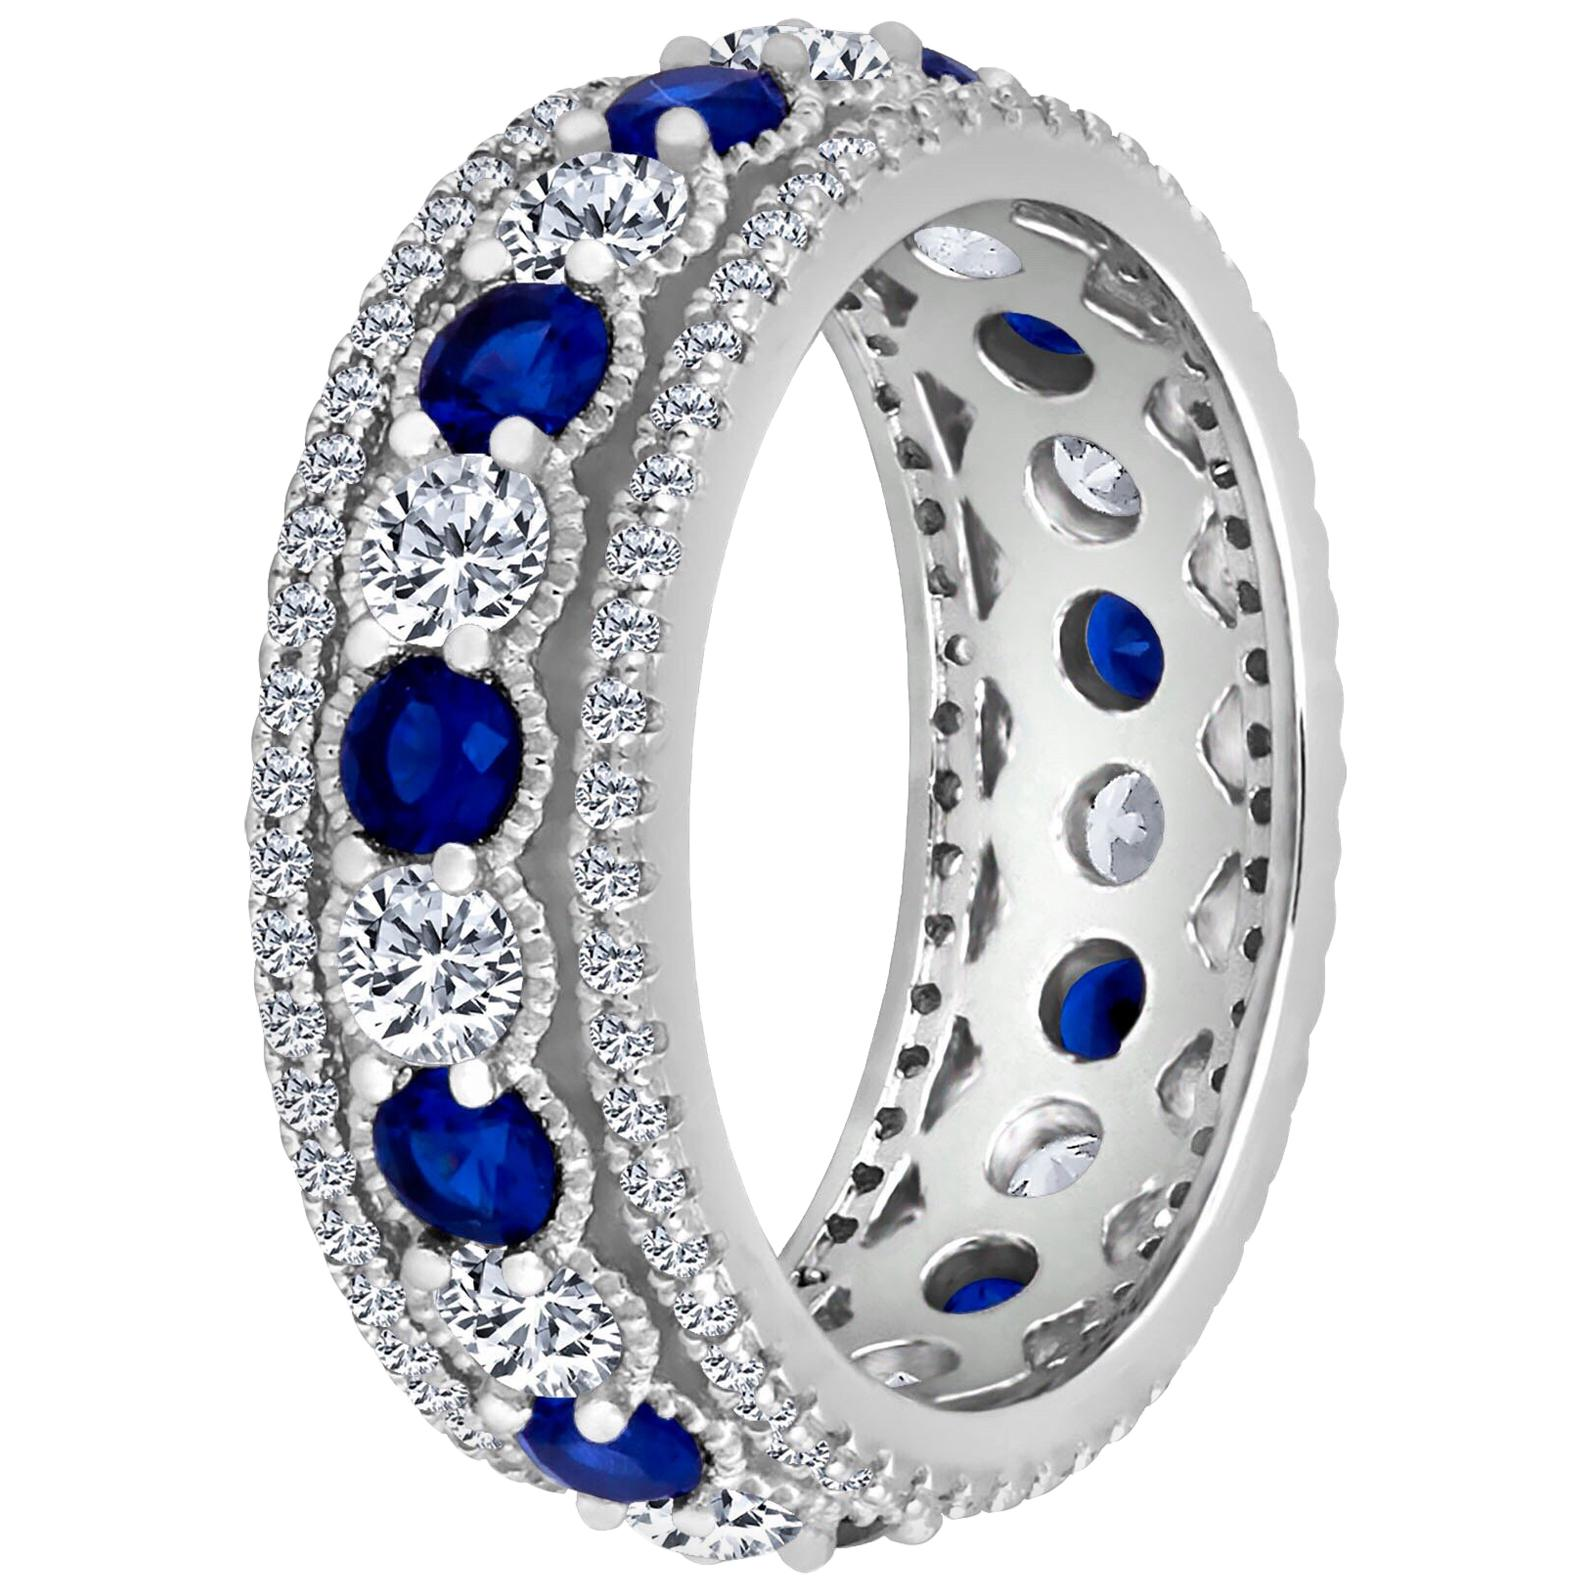 Emilio Jewelry Alternating Sapphire Diamond Platinum Eternity Band